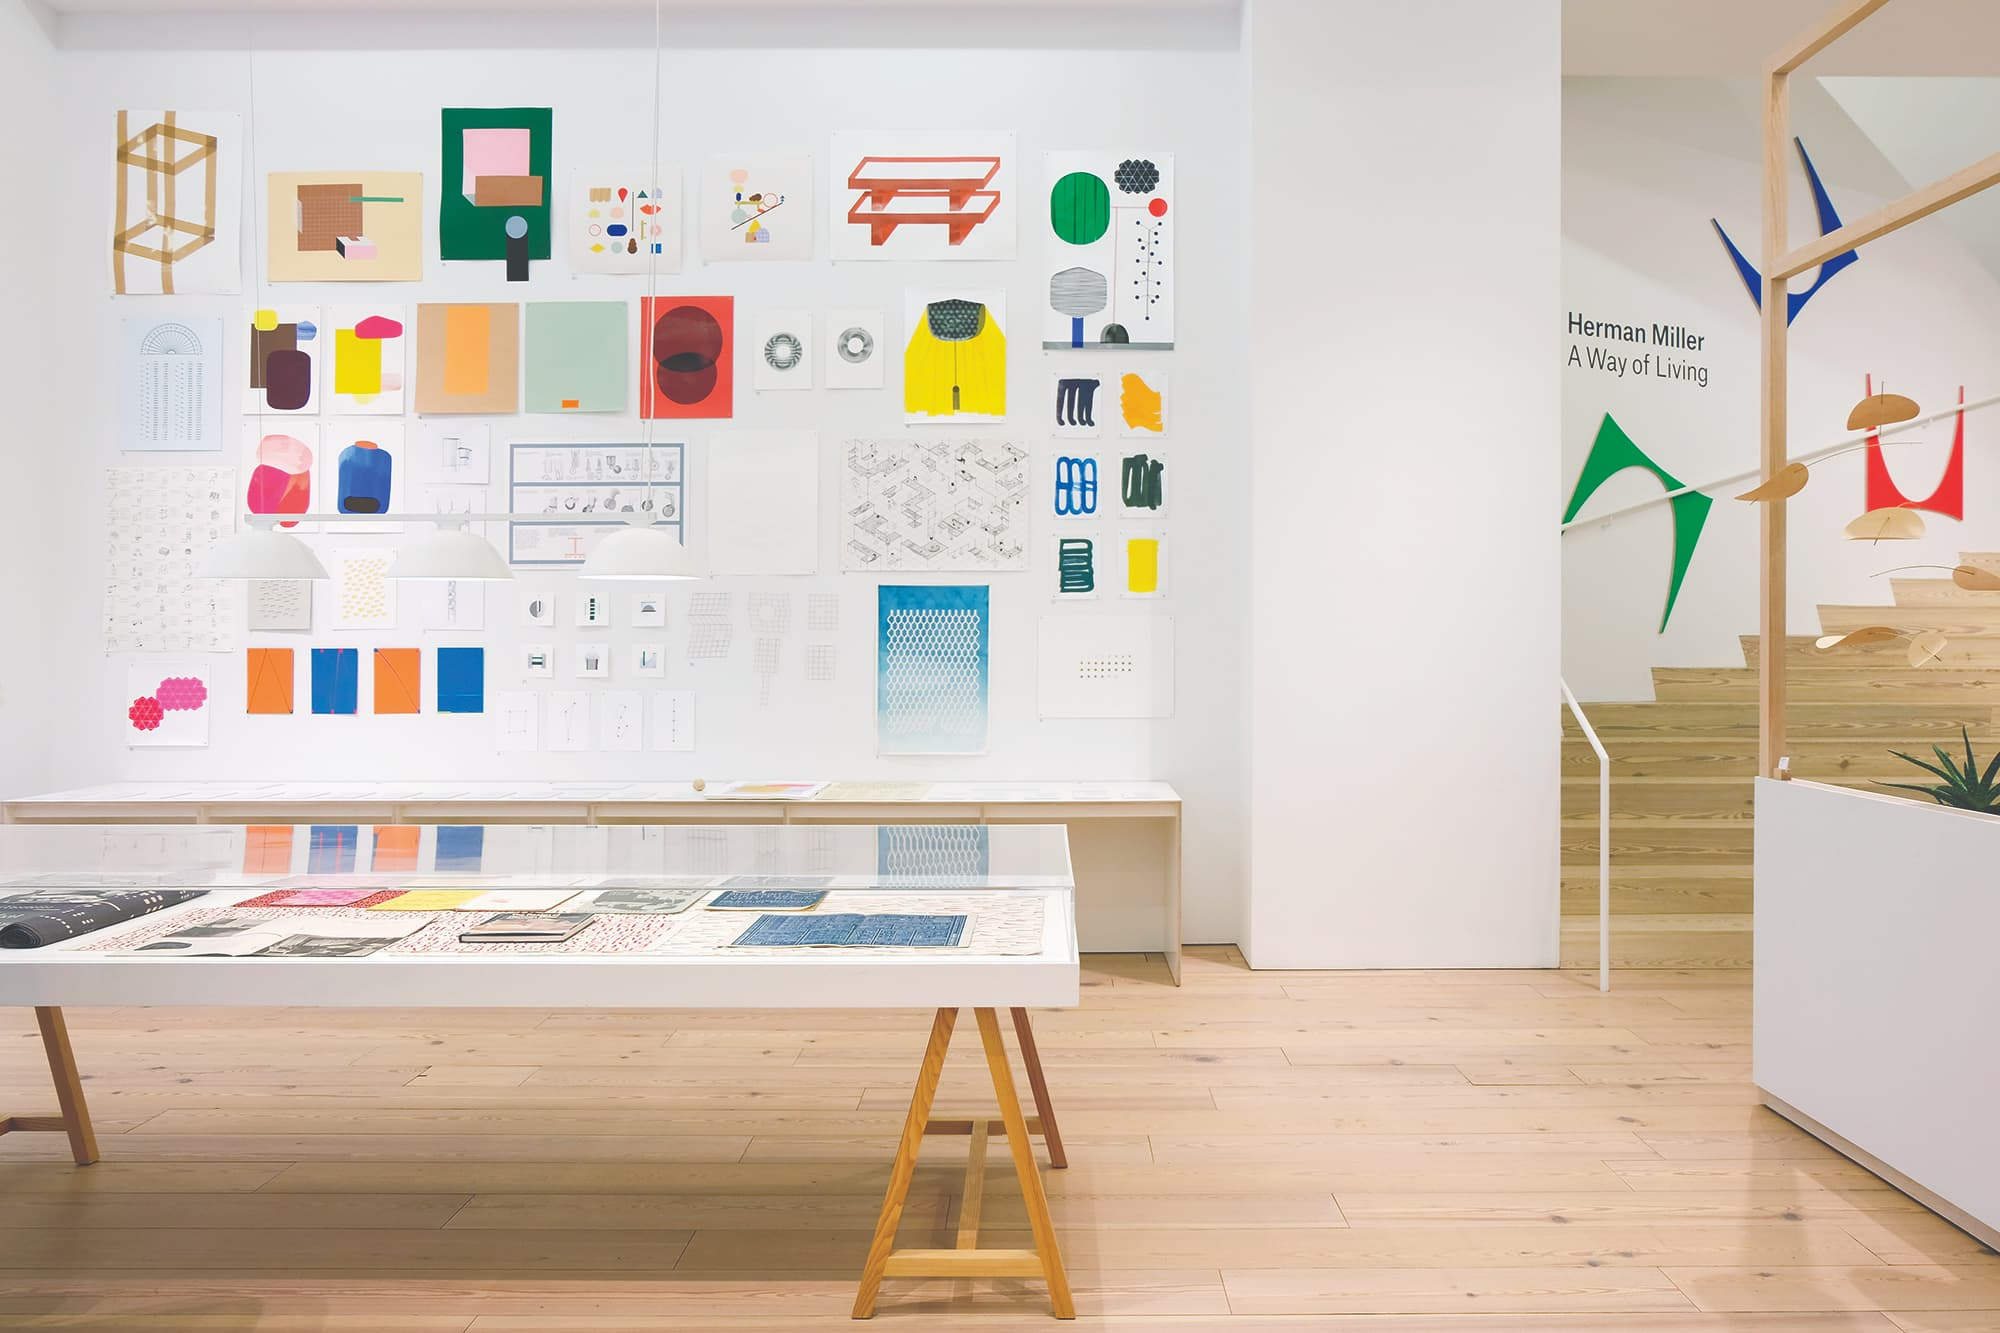 Furnishing Utopia at Herman Miller